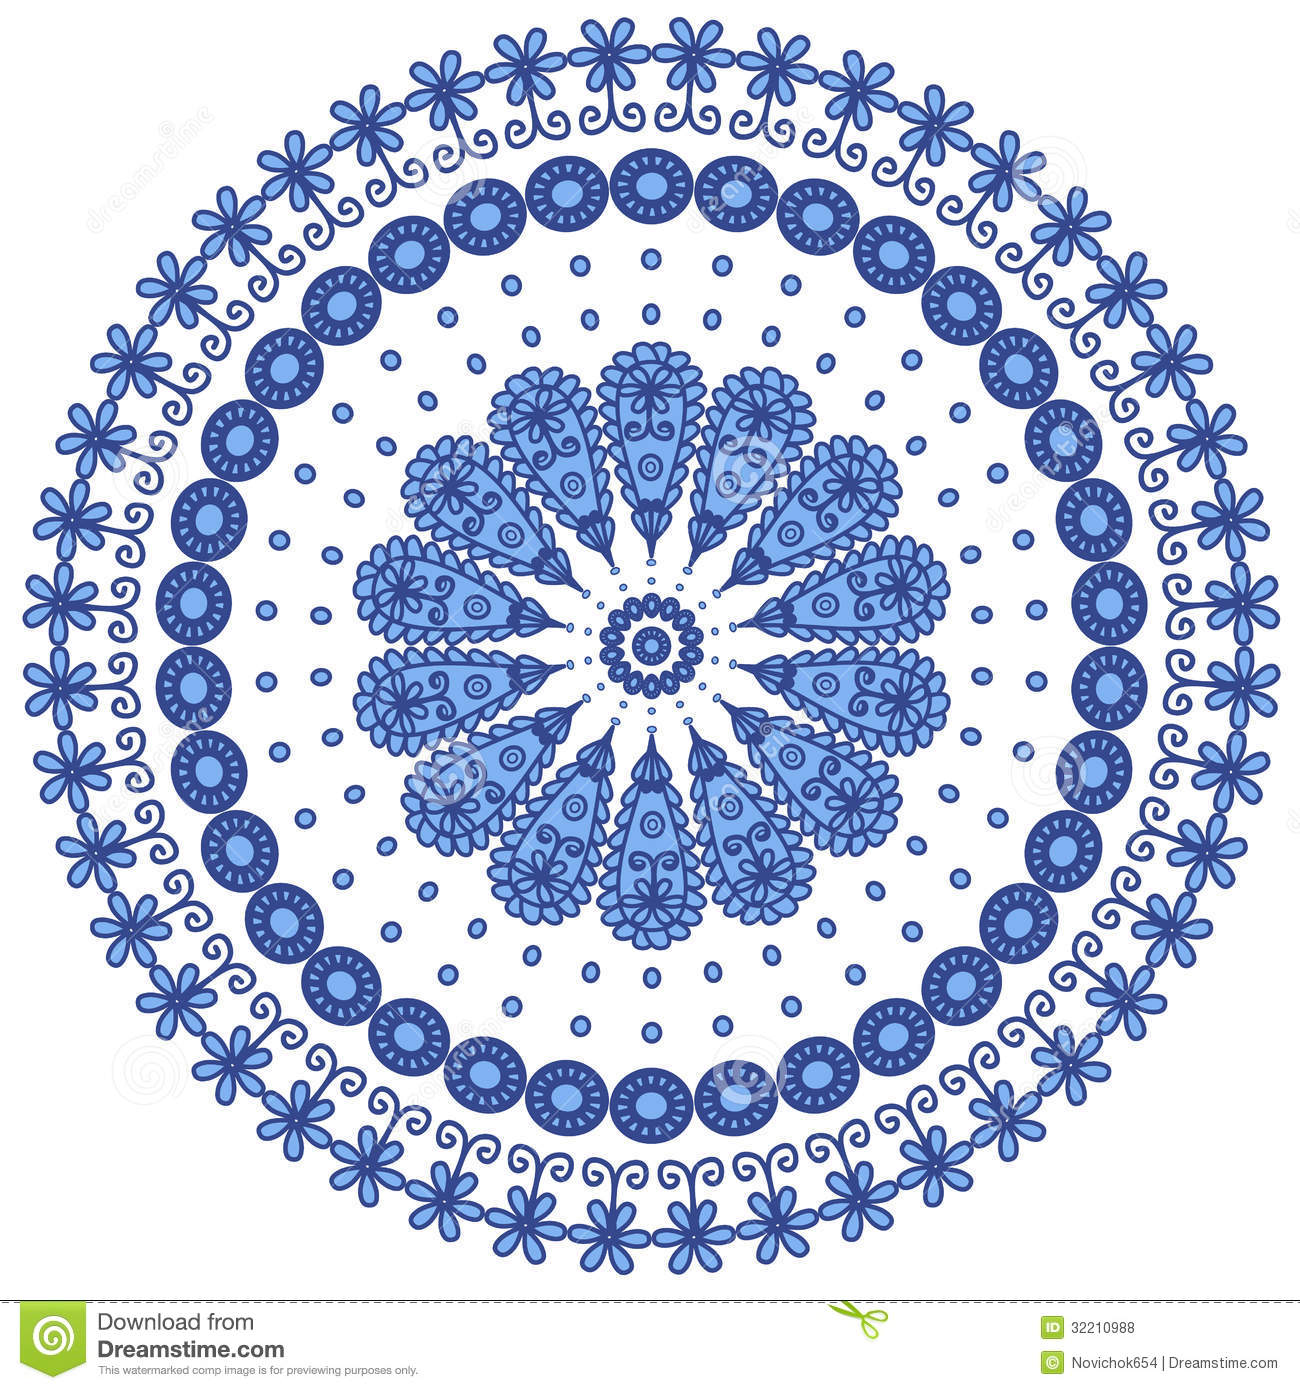 Lace doily henna flower vector illustration design - Blue Round Lace Royalty Free Stock Photos Image 32210988